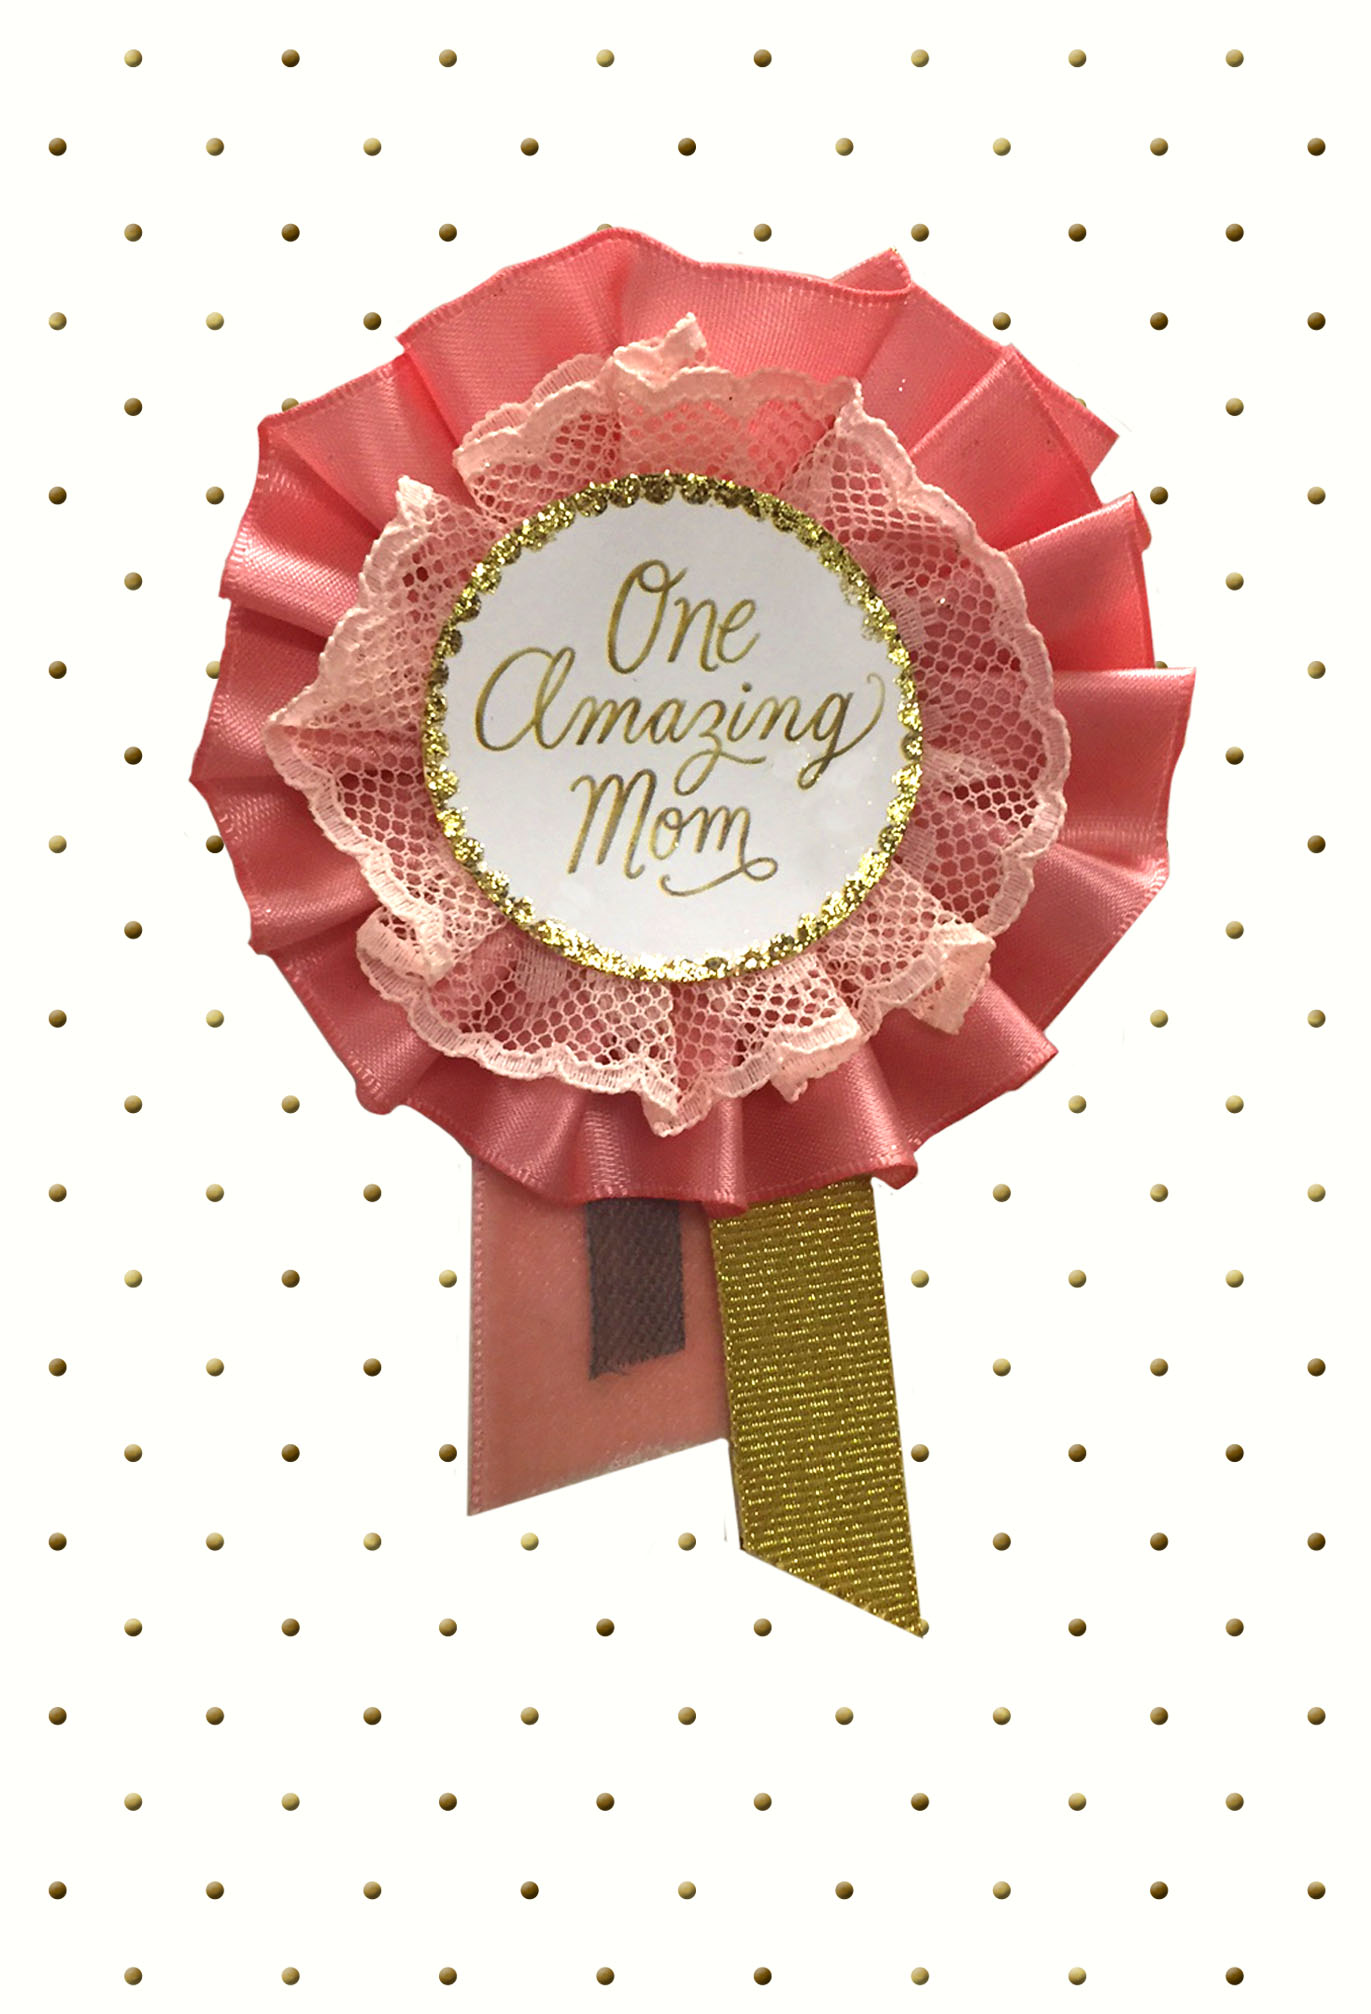 Signature – One Amazing Mom Mother's Day Card